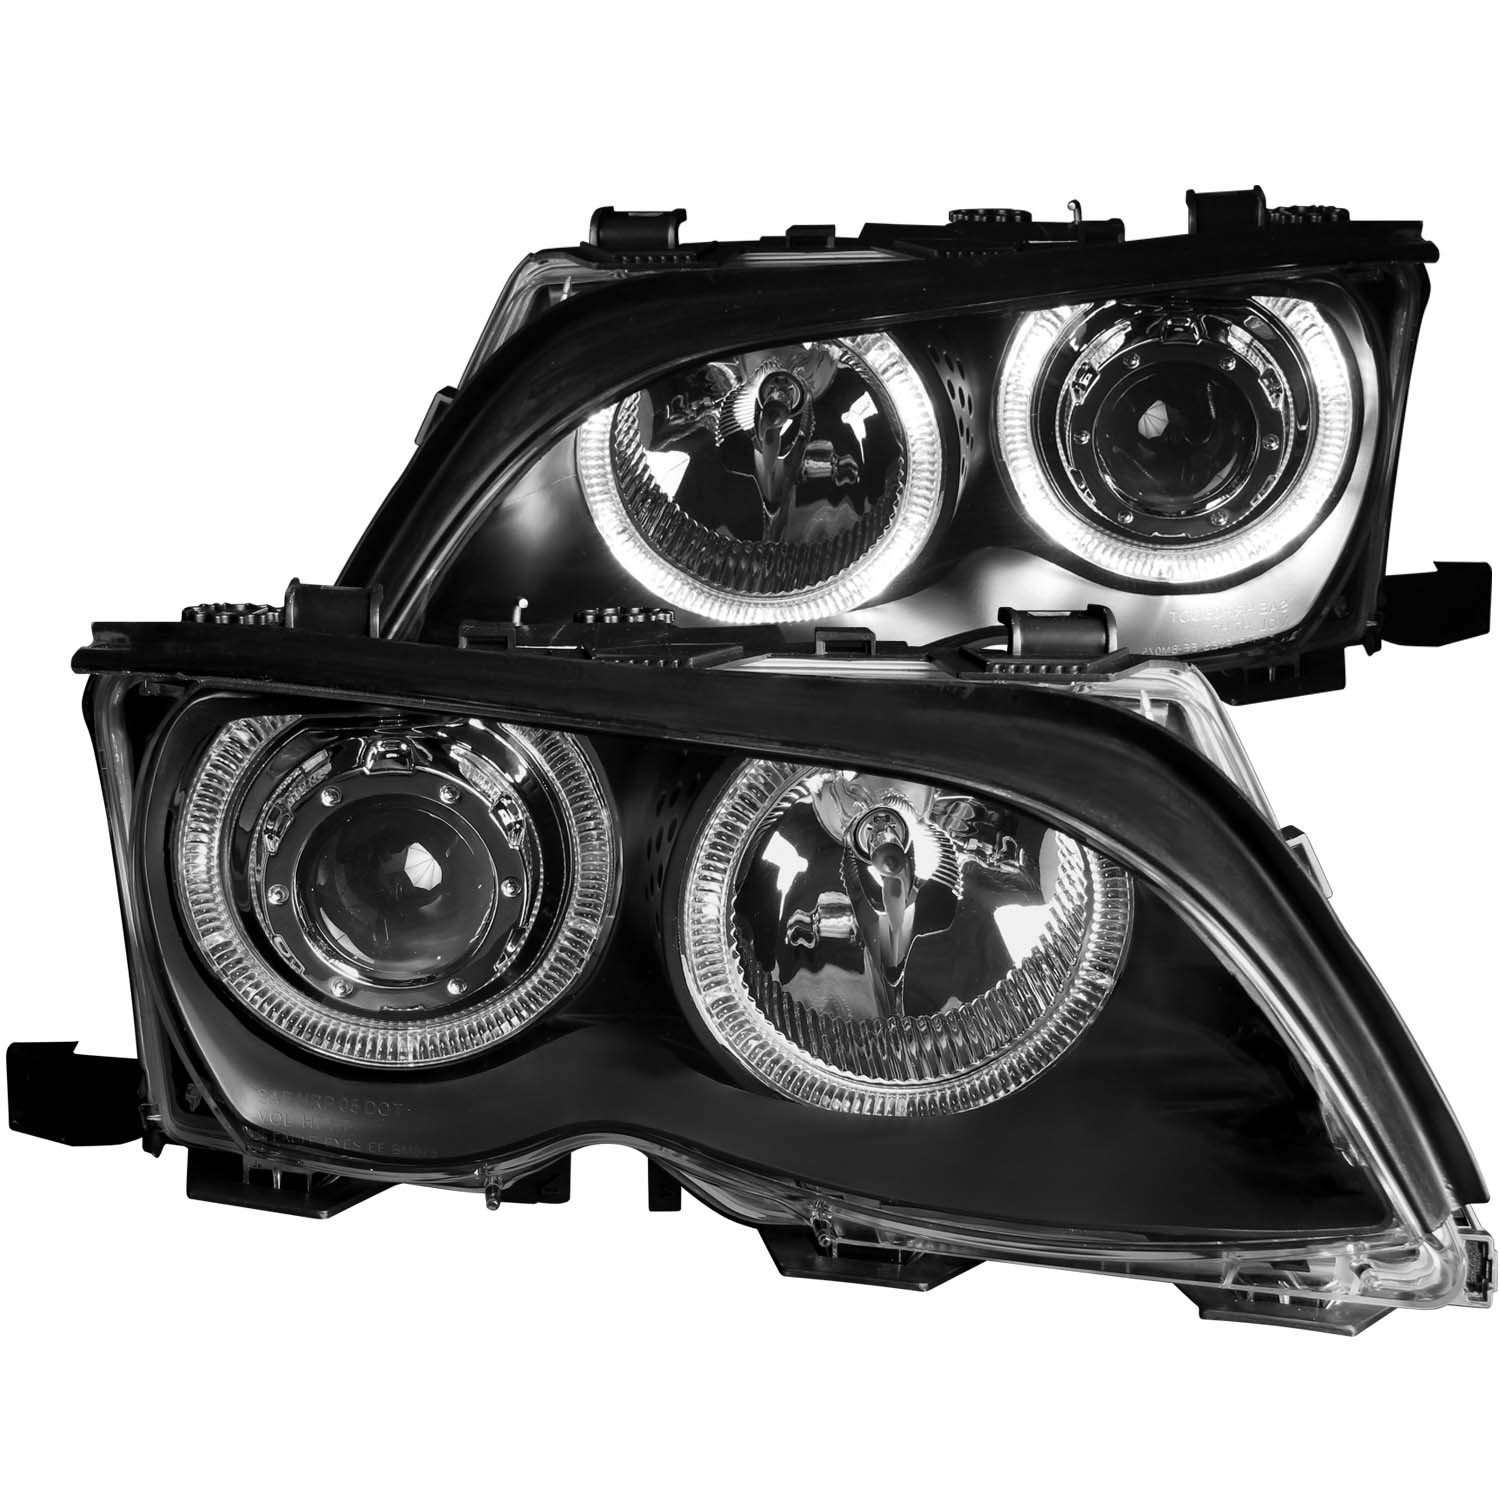 hight resolution of get quotations front headlight bmw 325i bmw 325xi bmw 330i bmw 330xi 3 series e46